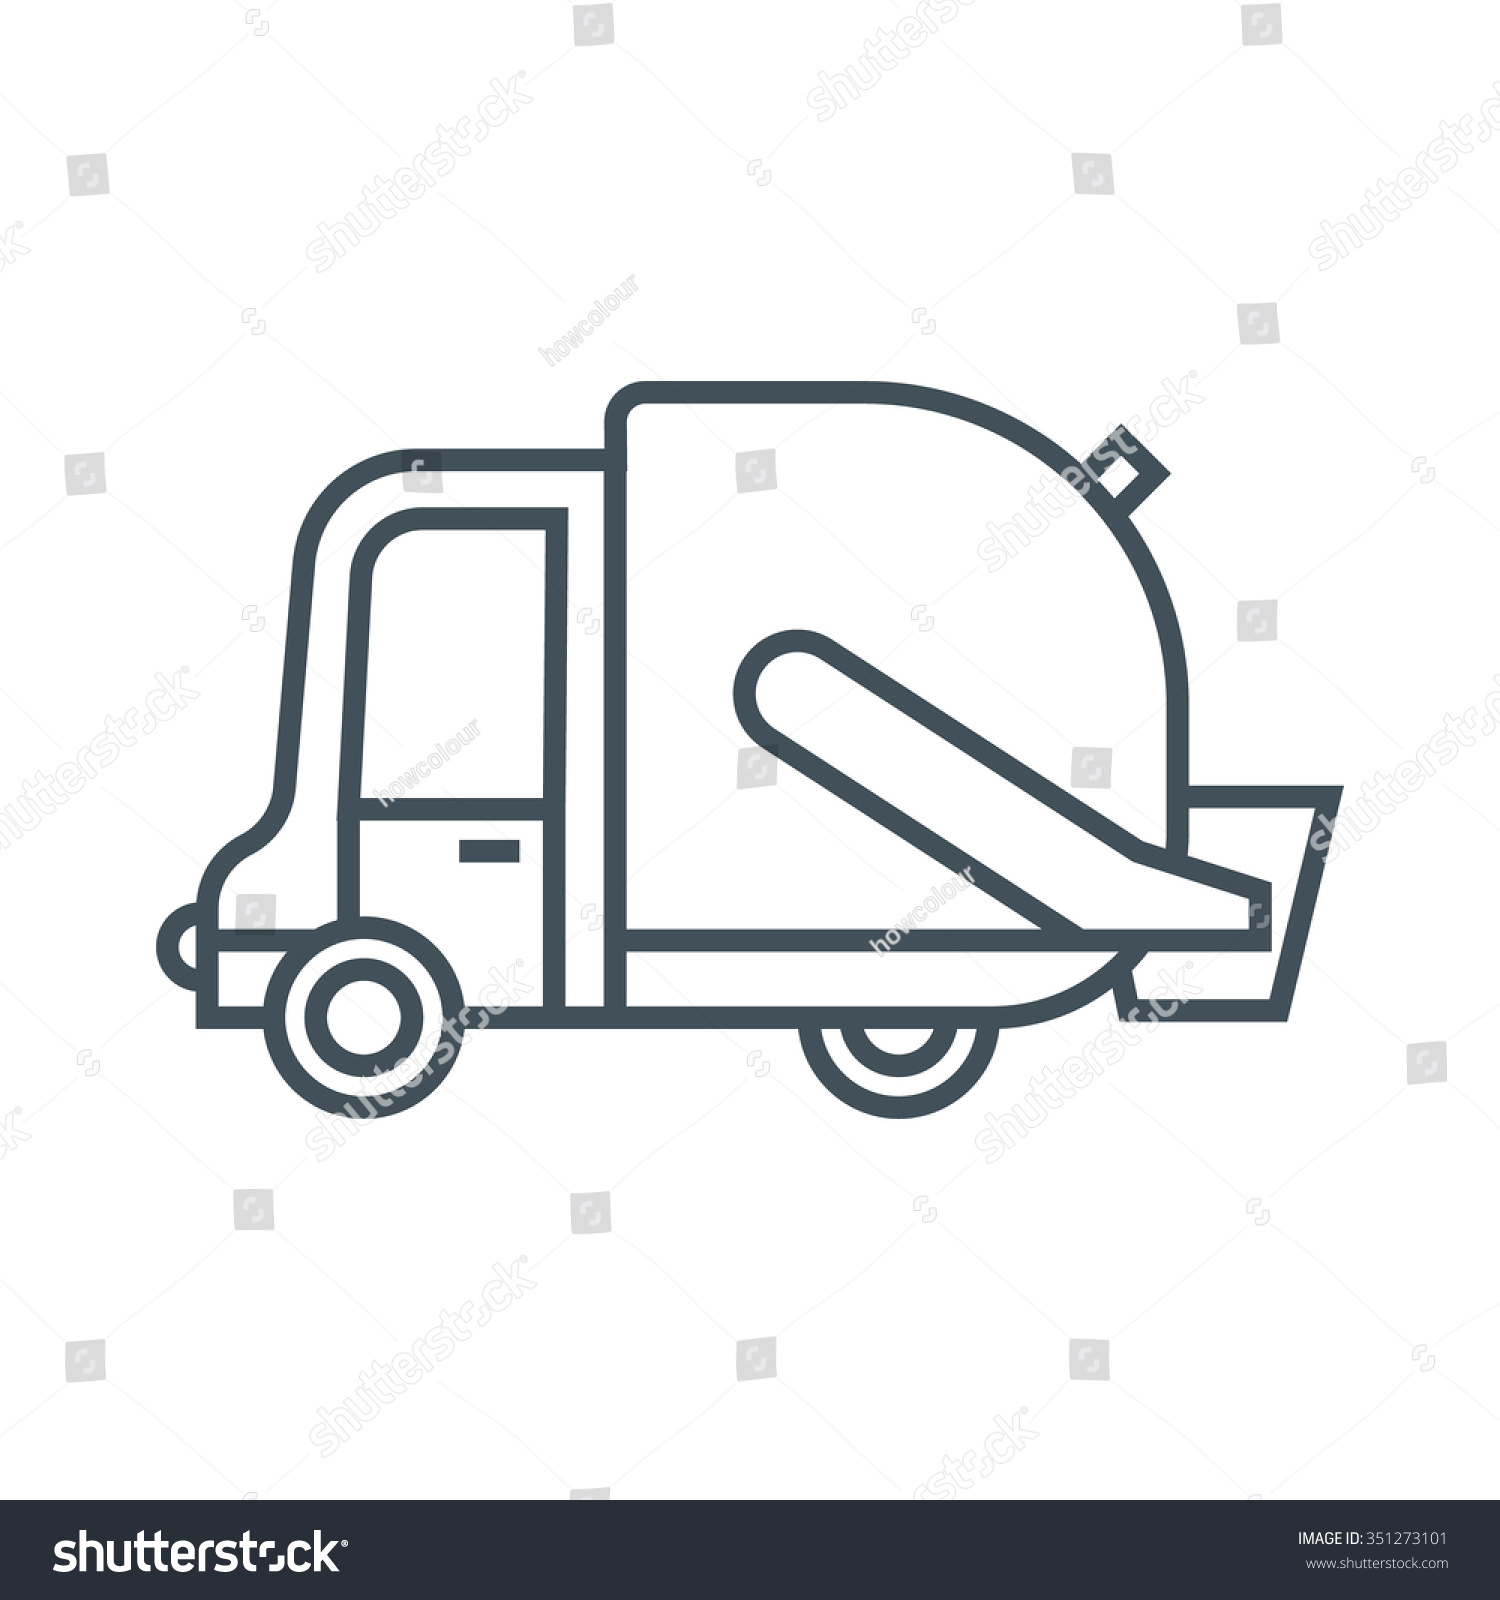 Garbage truck coloring book pages - Waste Management Garbage Truck Icon Suitable For Info Graphics